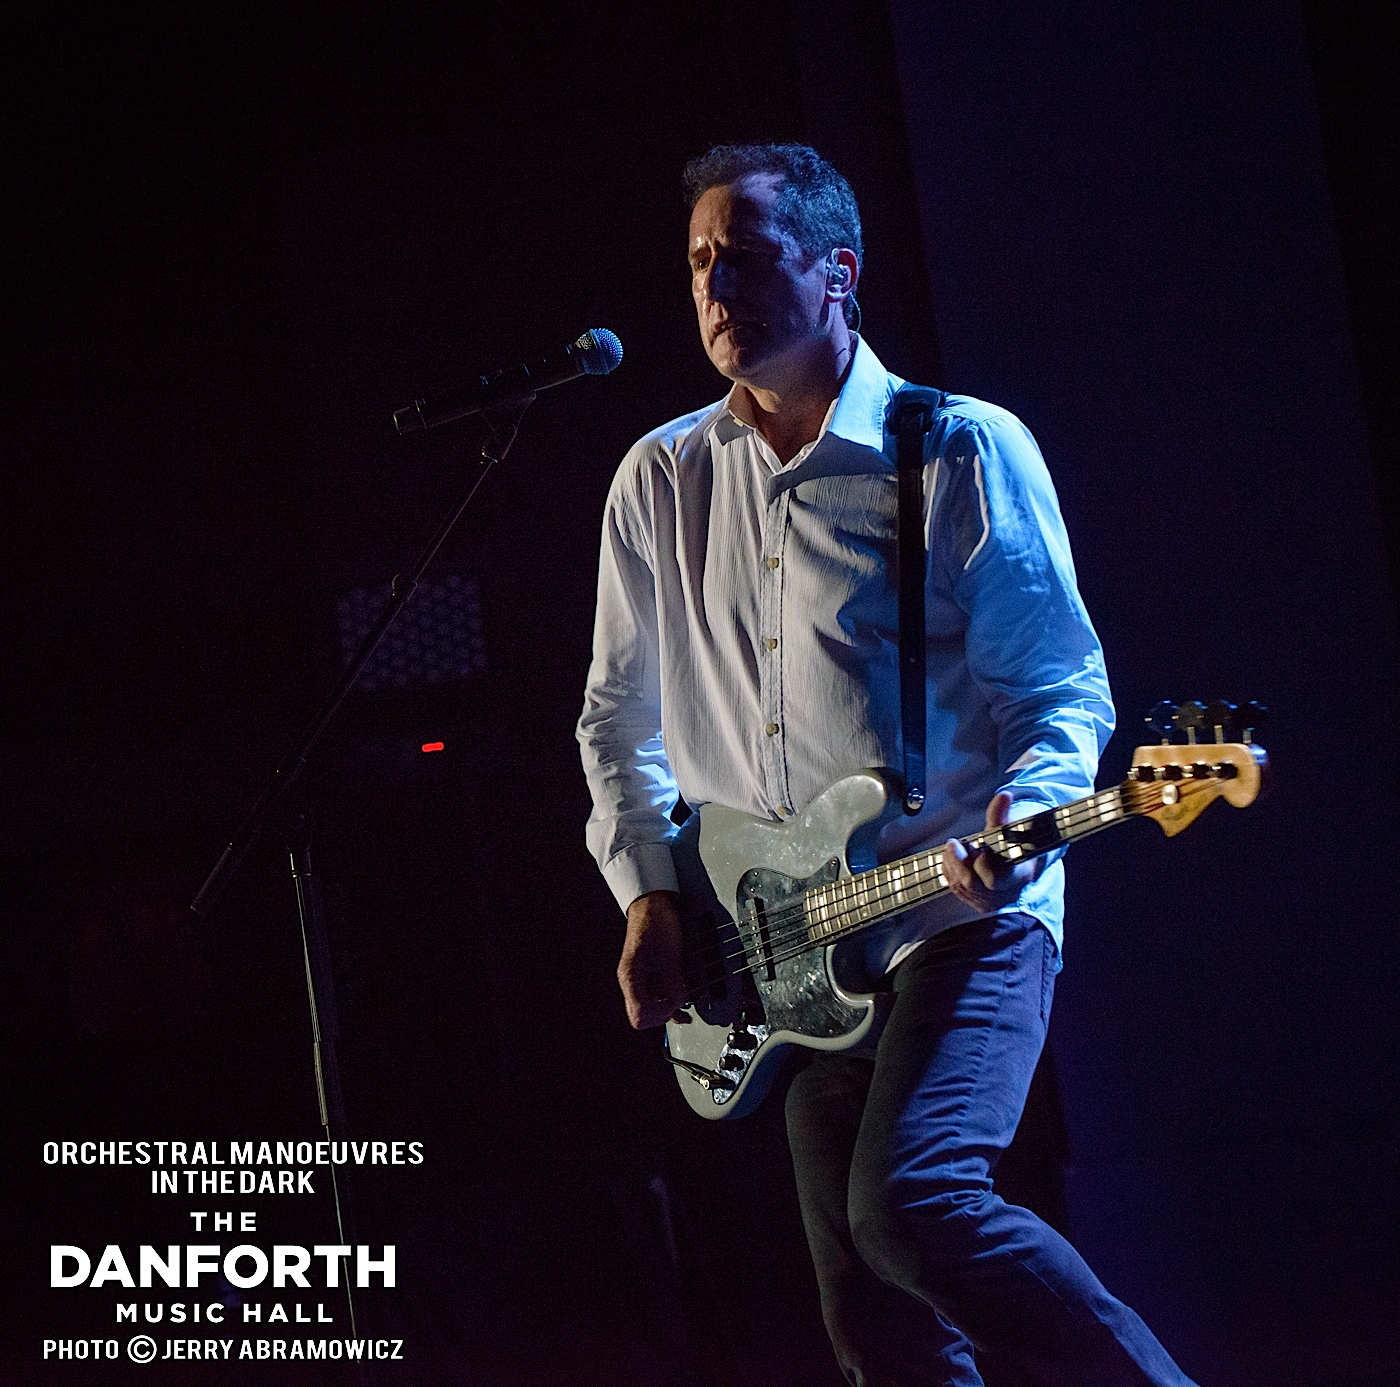 20130711 Orchestral Manoeuvres in the Dark at The Danforth Music Hall 0240